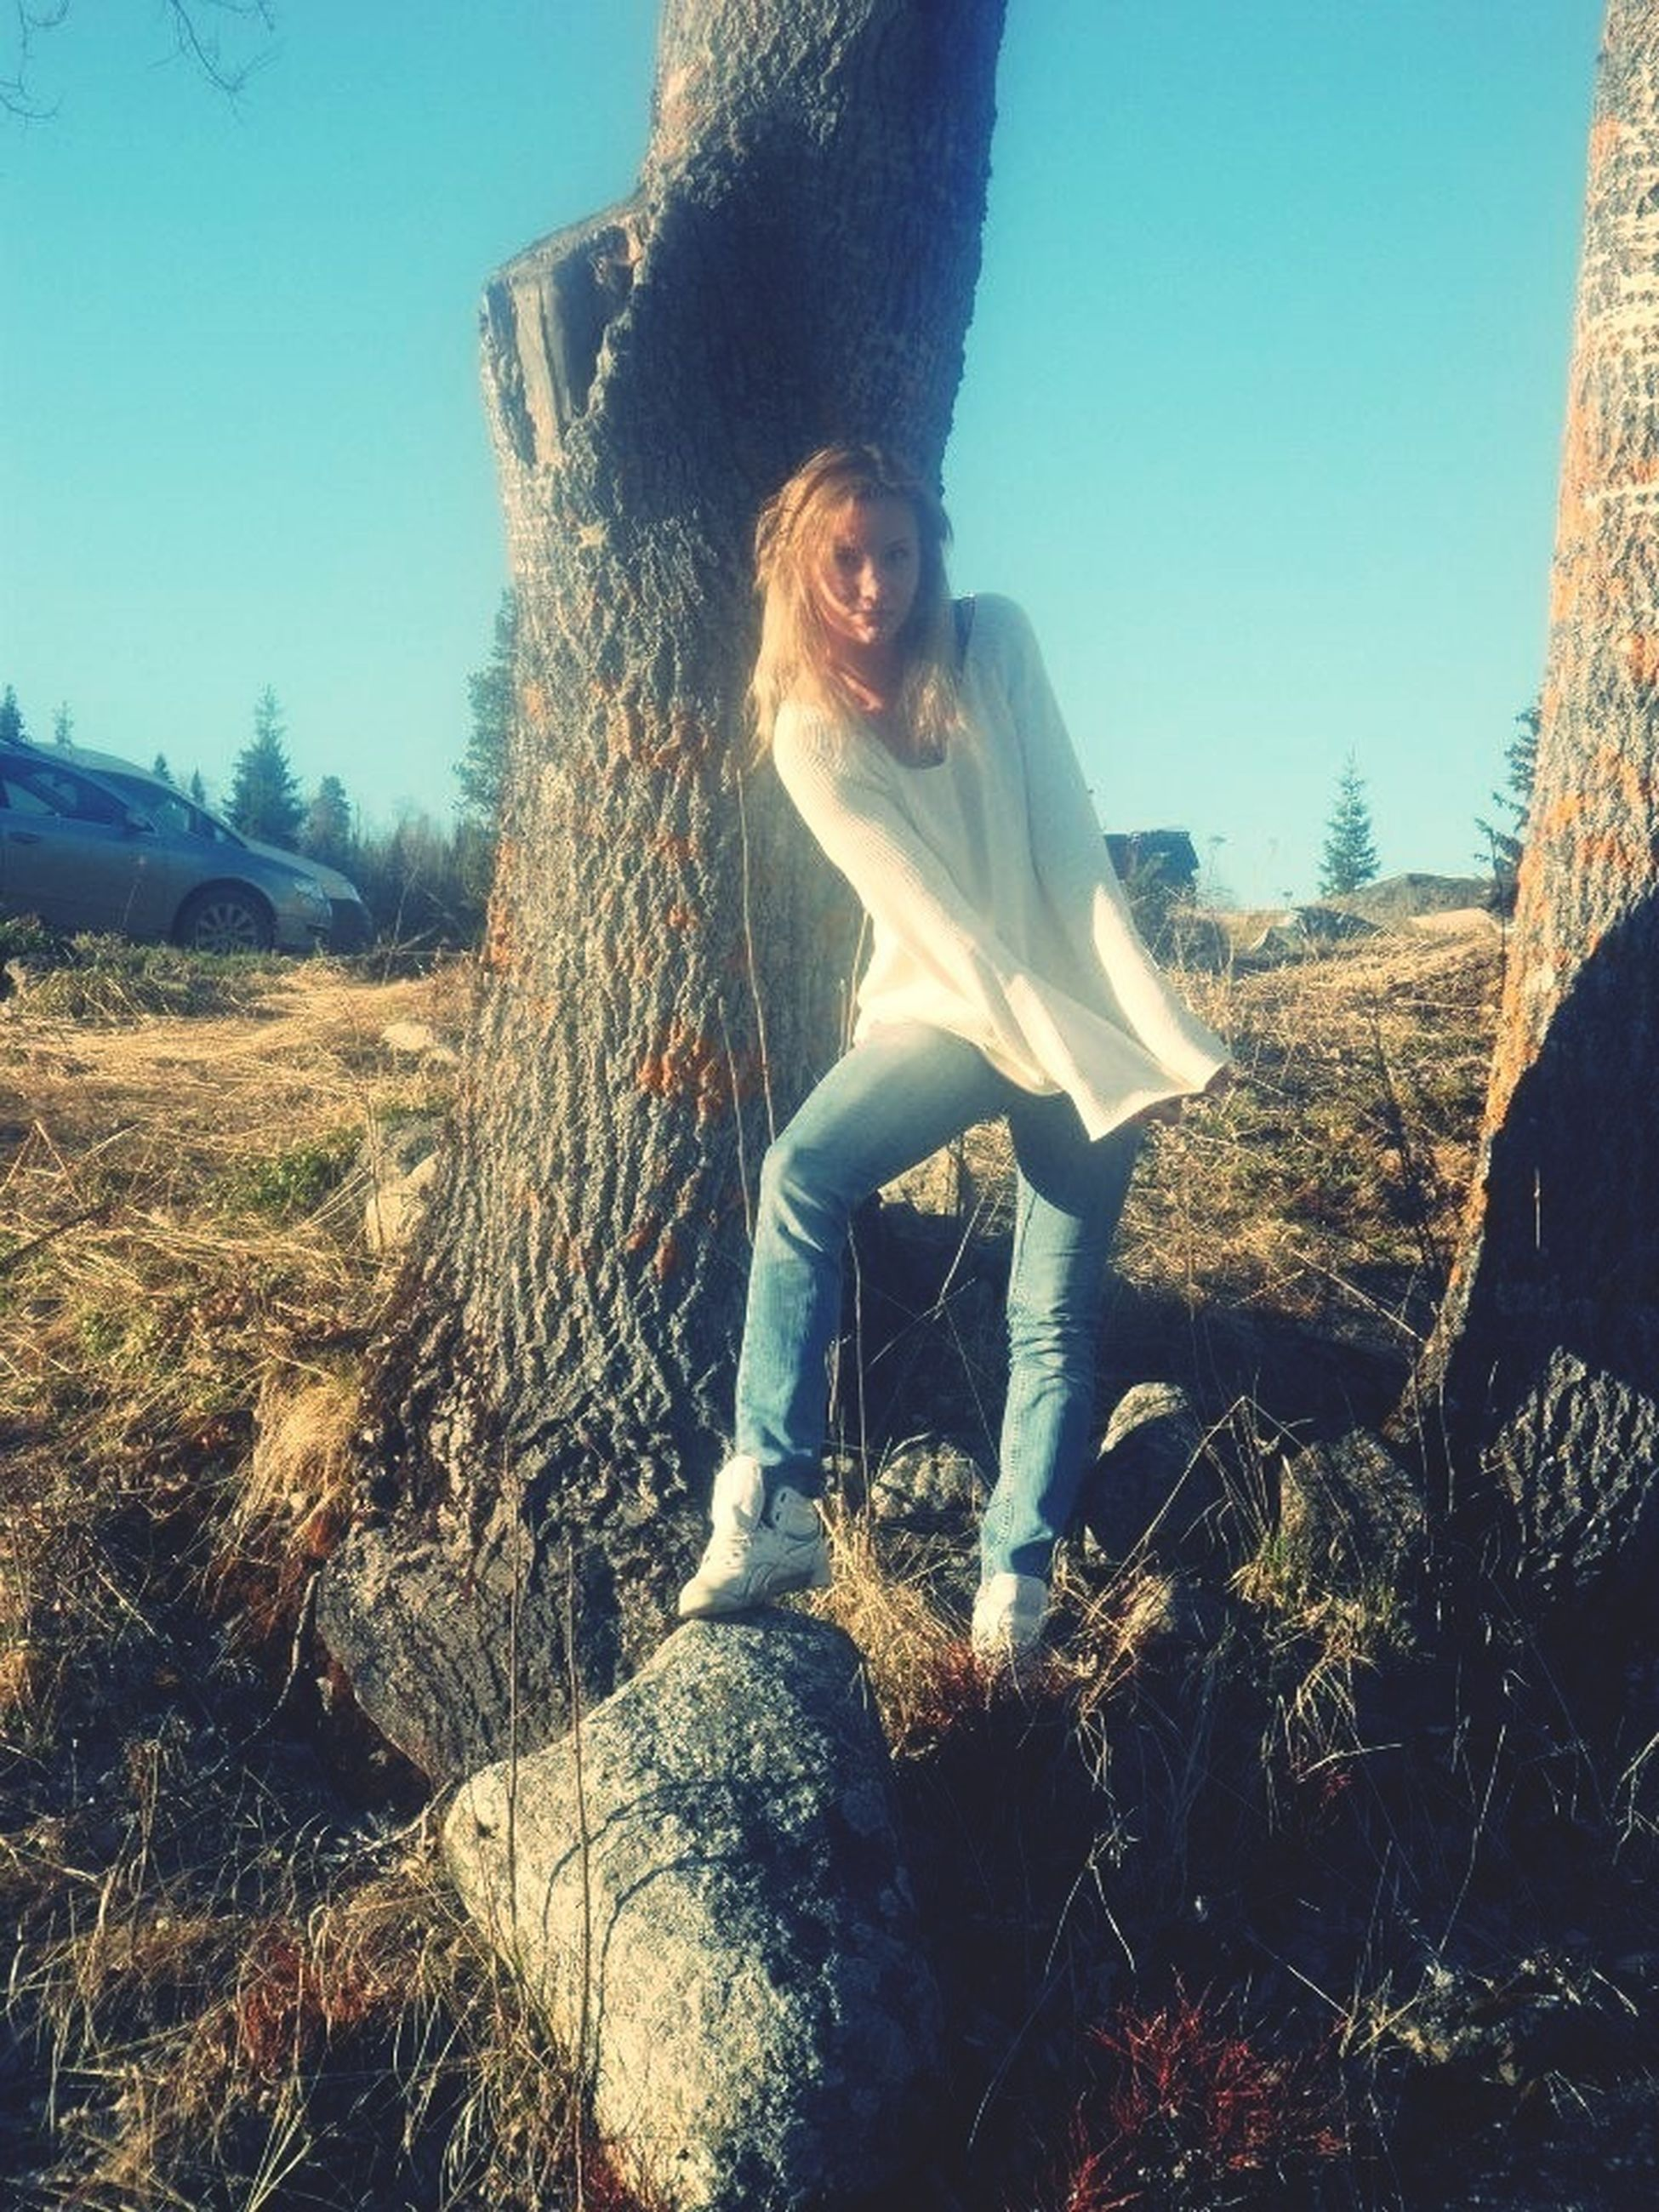 lifestyles, leisure activity, young adult, clear sky, casual clothing, standing, sunlight, full length, young women, tree, person, front view, day, three quarter length, low section, looking at camera, nature, portrait